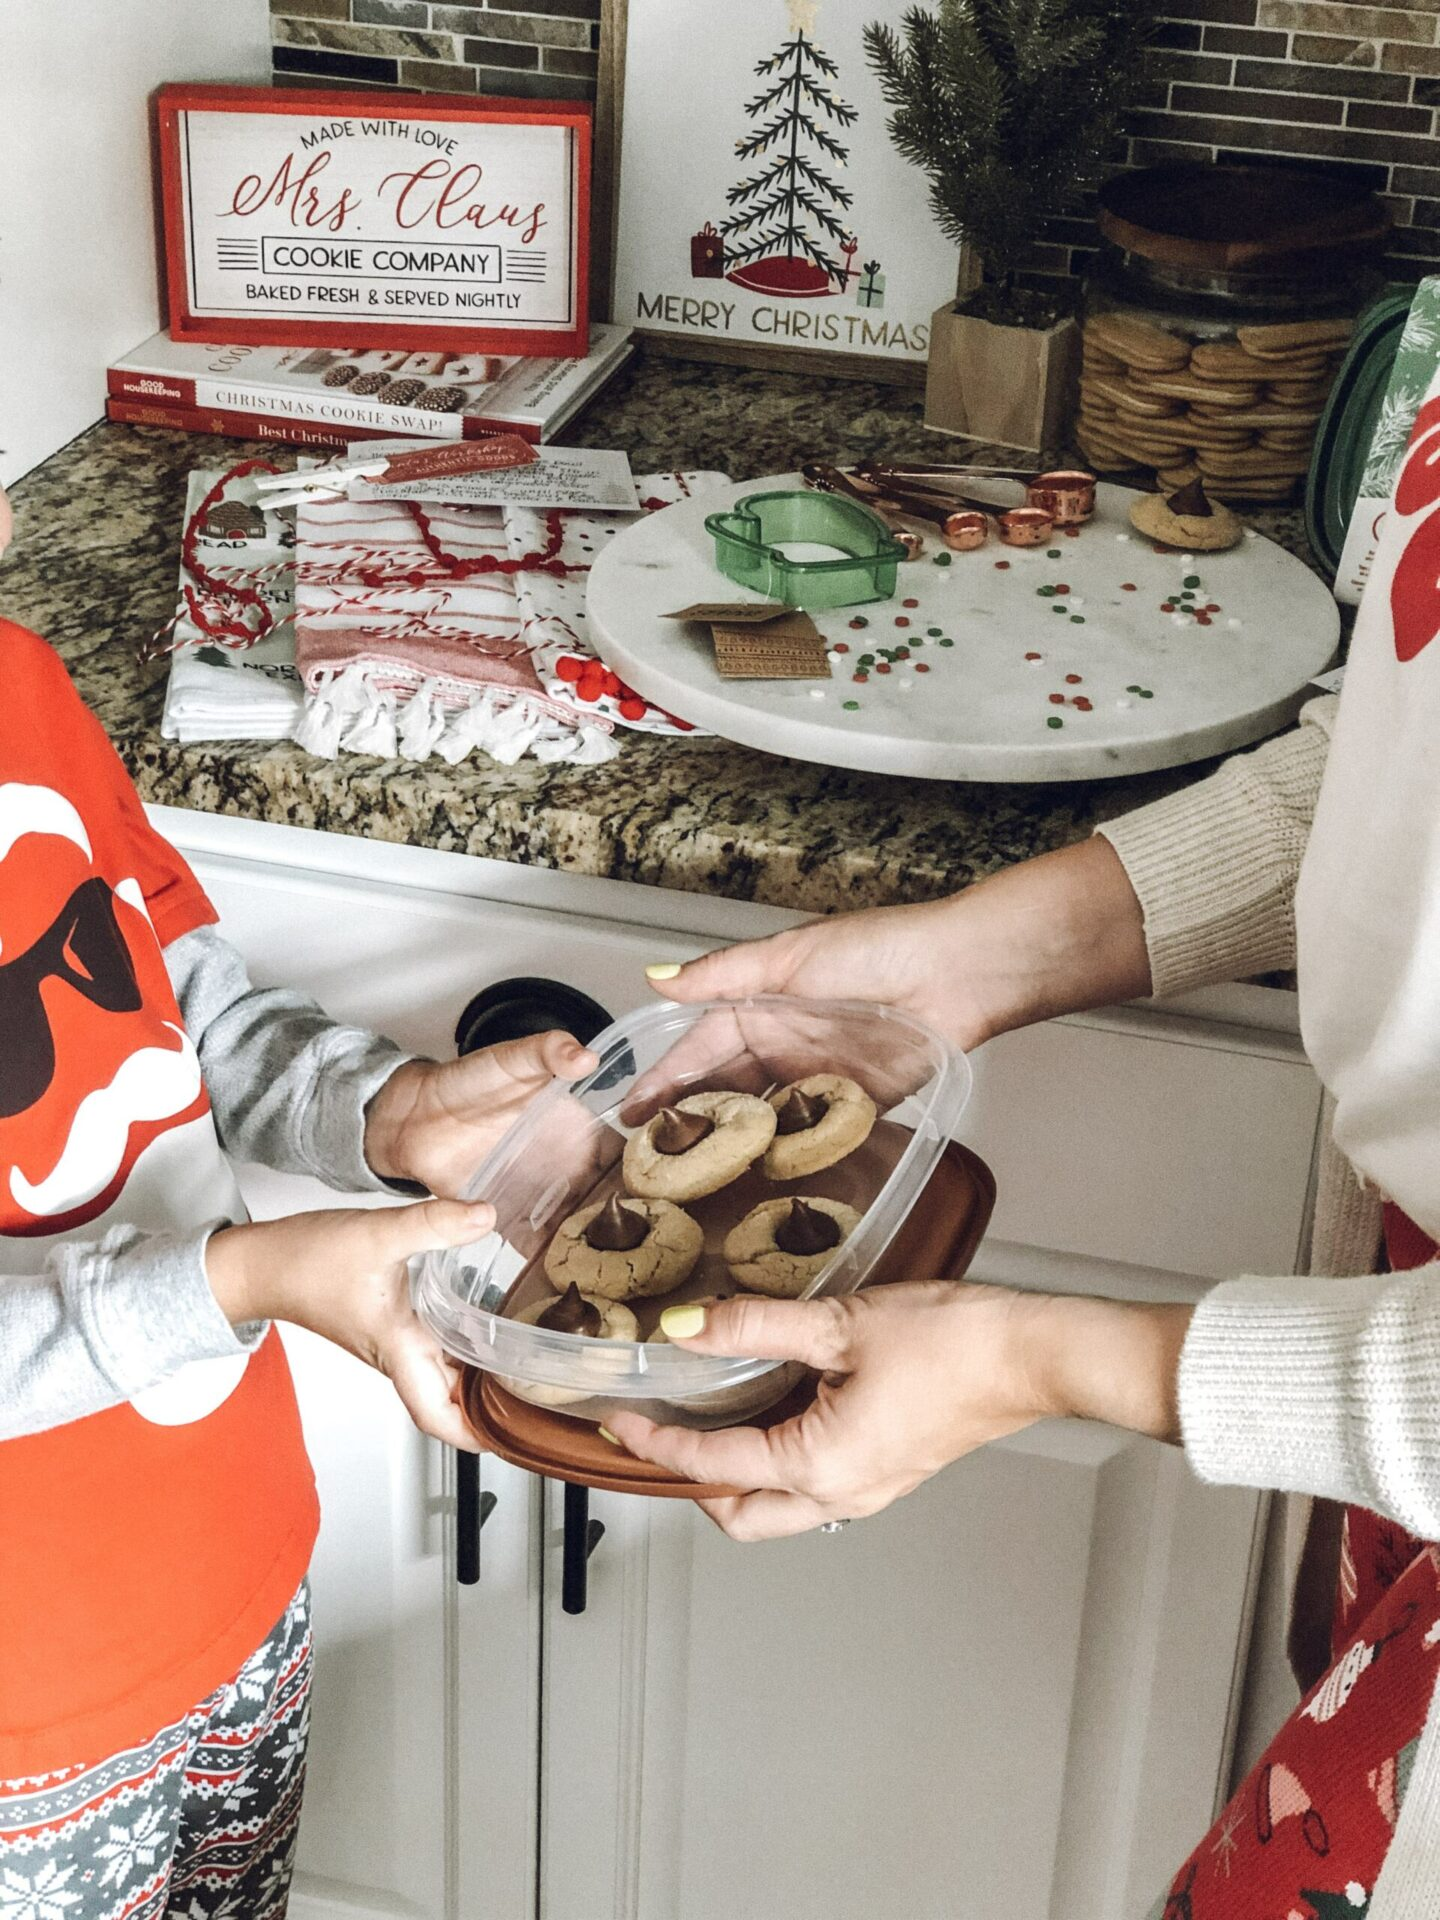 Christmas cookies, Gift Giving│Homemade Baked Goods and Cookie Baking Kits